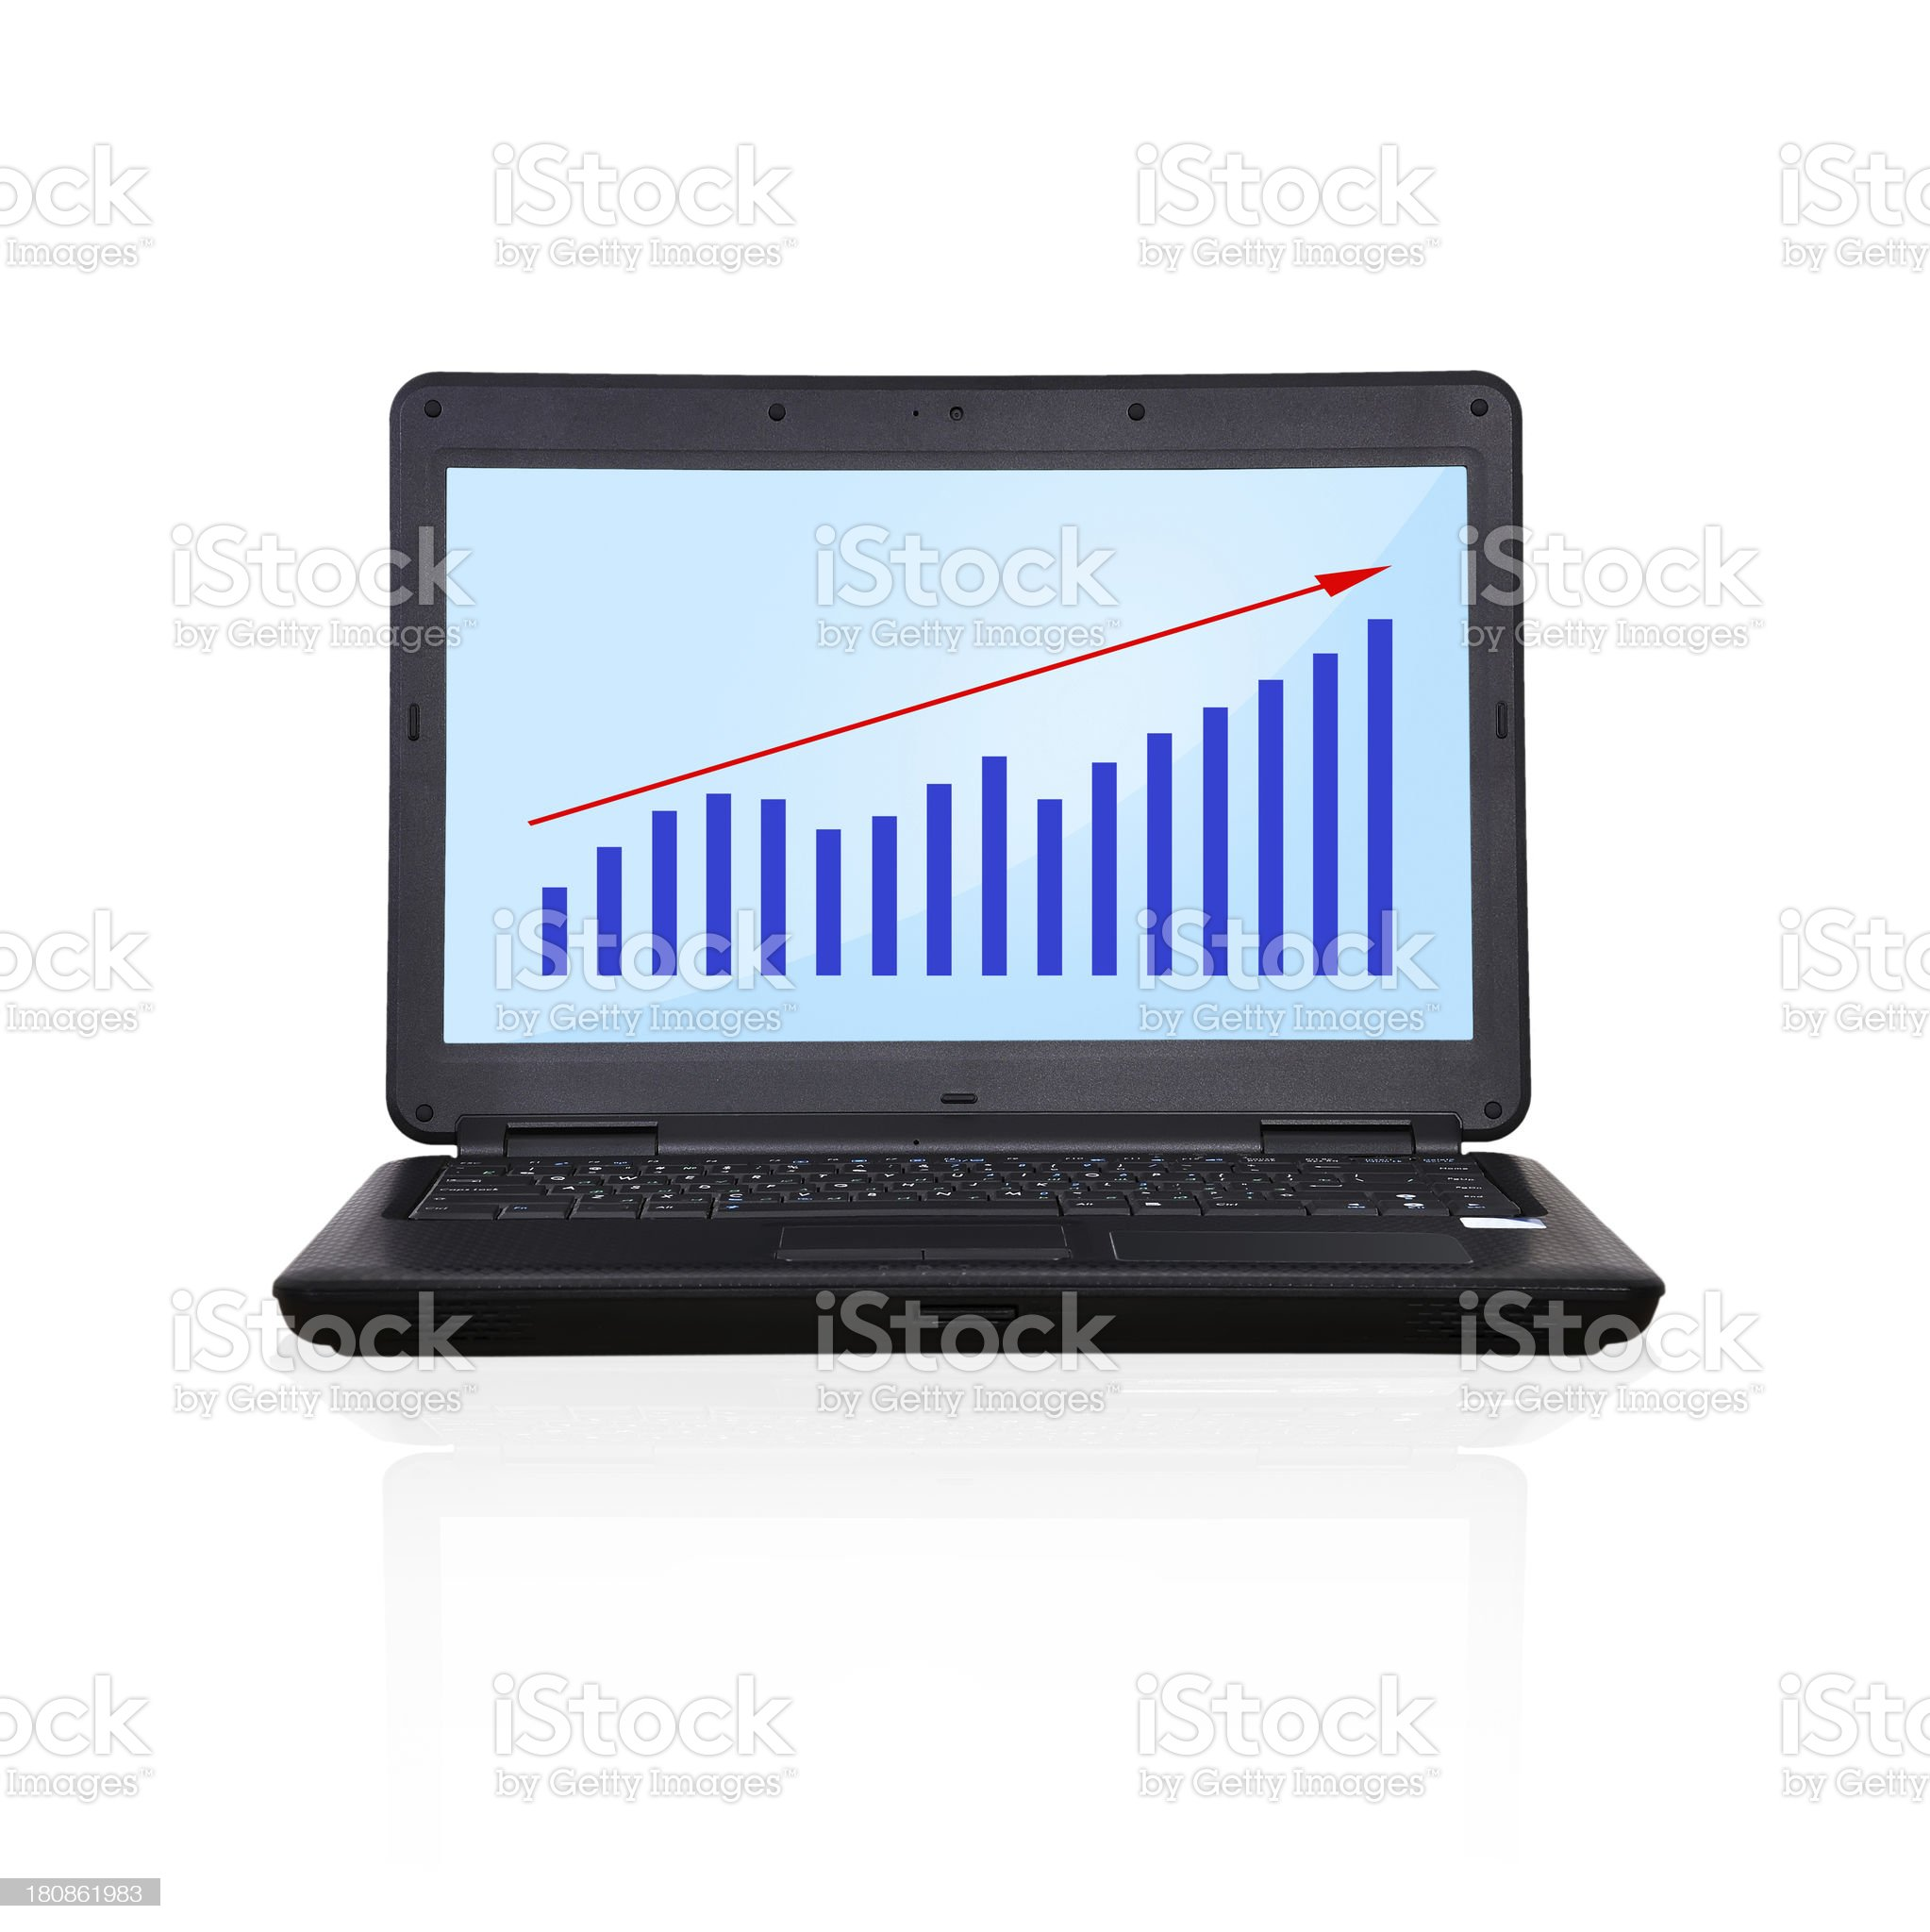 laptop with graph royalty-free stock photo